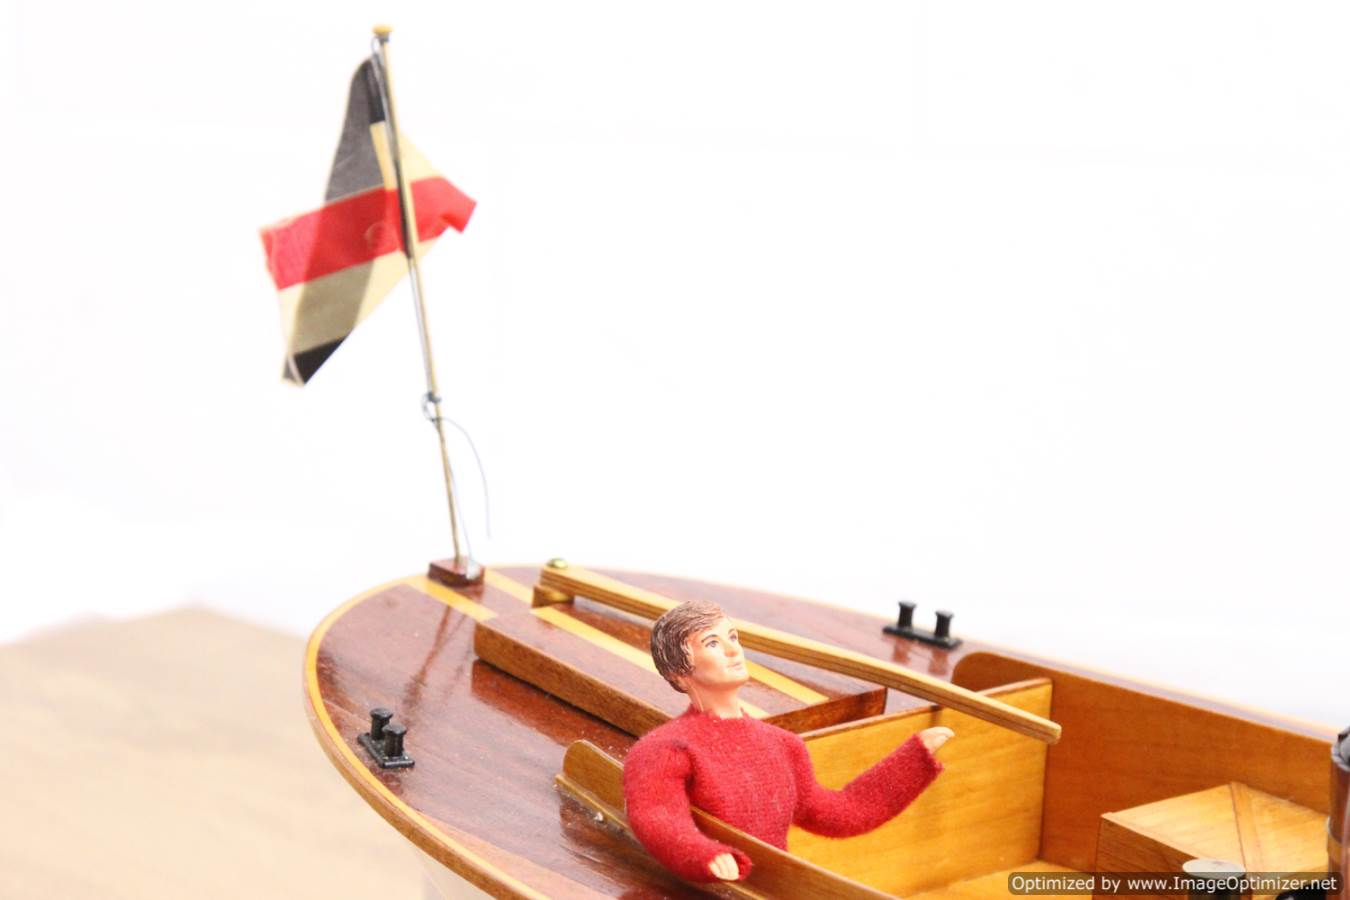 test anna-cheddar-steam-boat-live-steam-model-for-sale-18-optimized